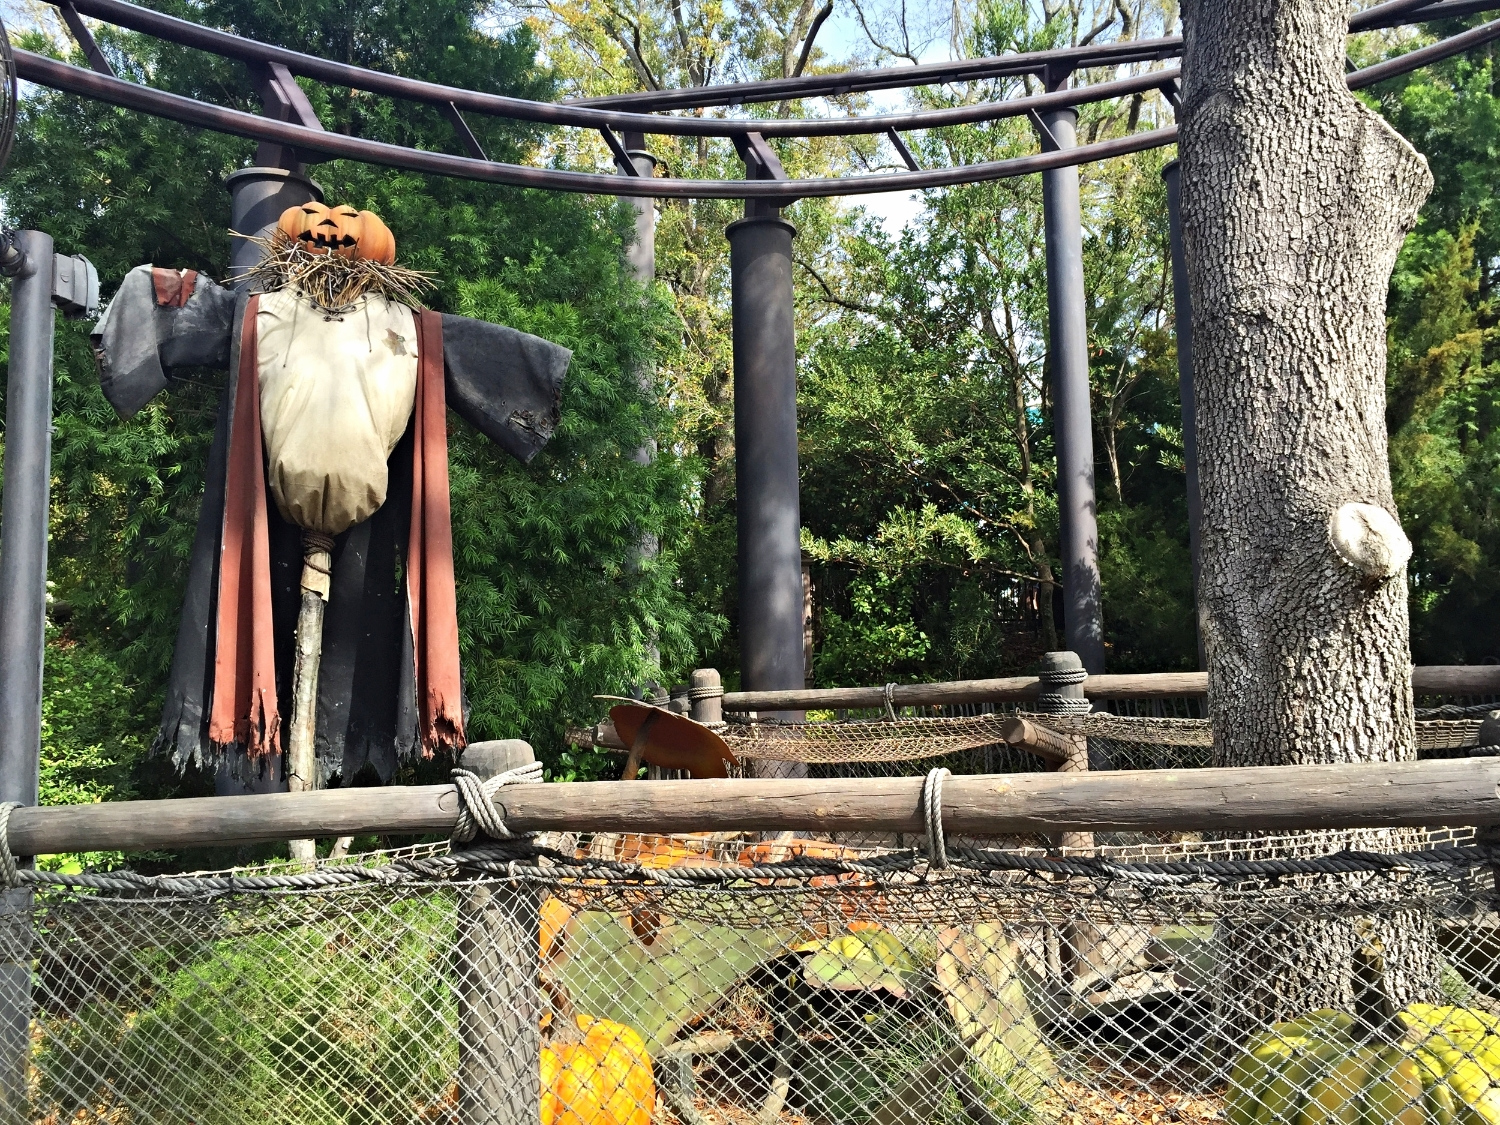 Flight of the Hippogriff Zips Above Hagrid's Pumpkin Patch